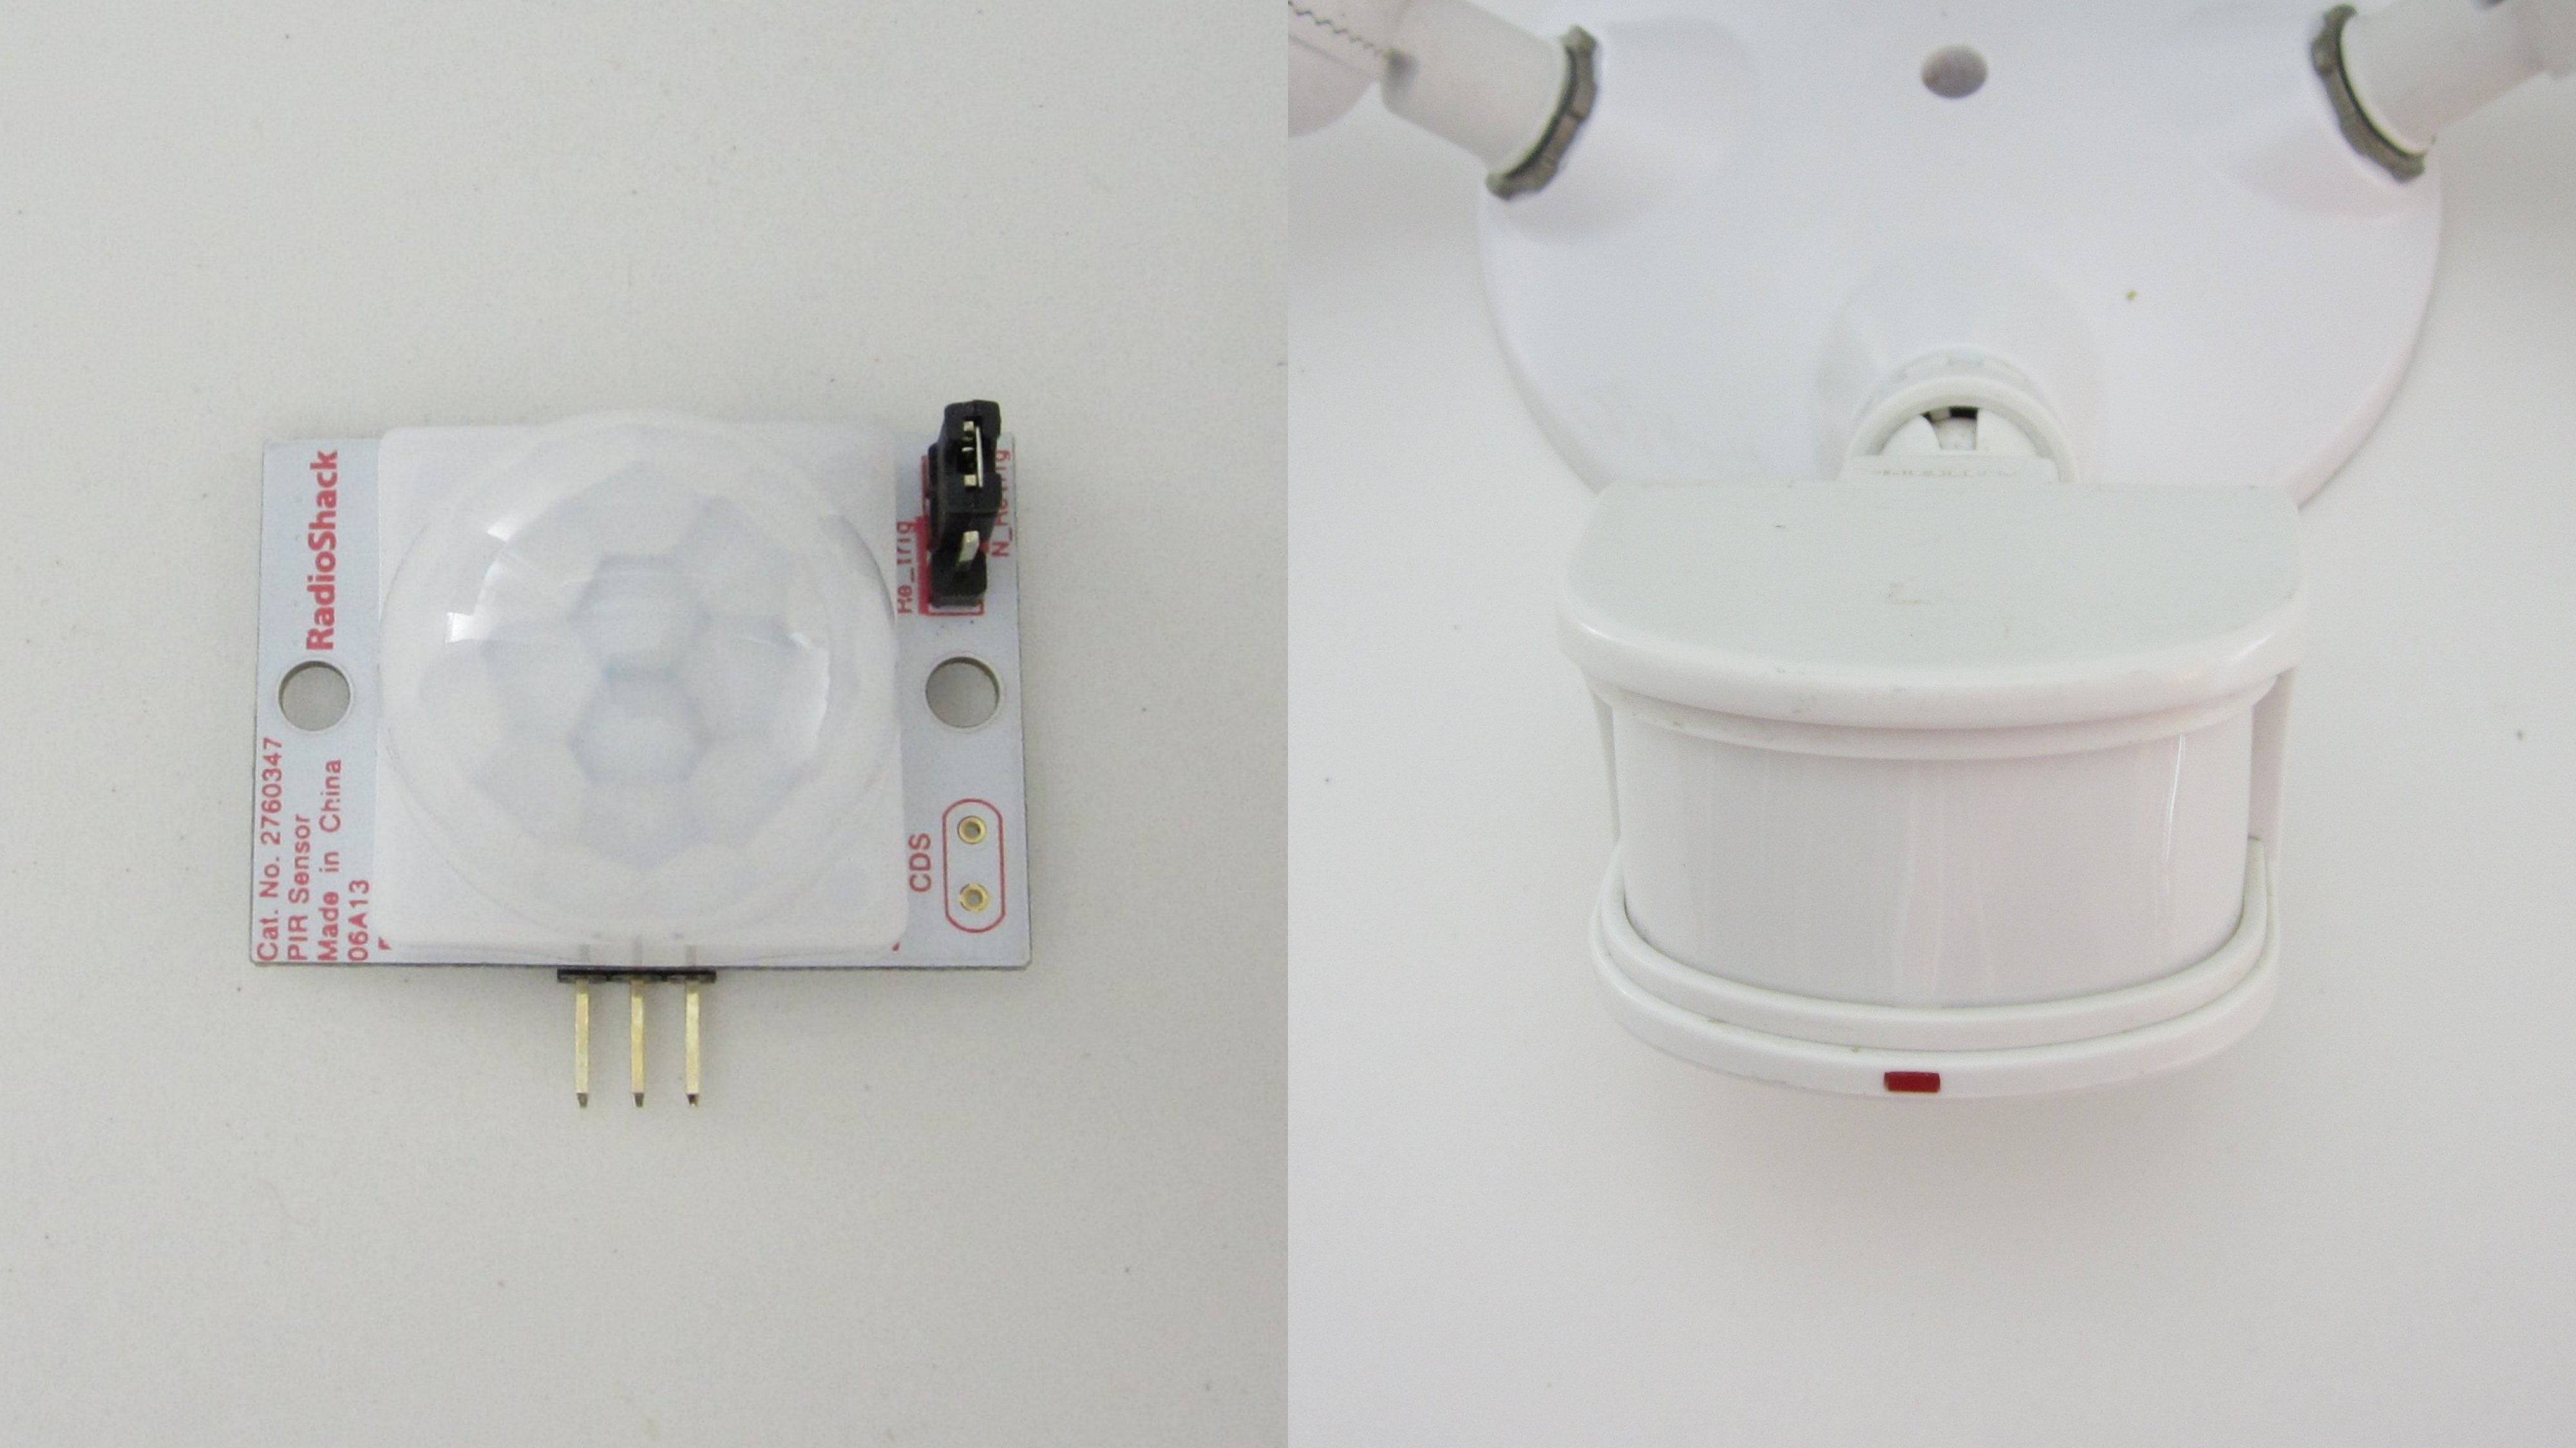 Diy Hacks How Tos Use A Motion Sensor To Automate Your Haunted Mini Pir Switch W Built In Timer Switches Relays House Make